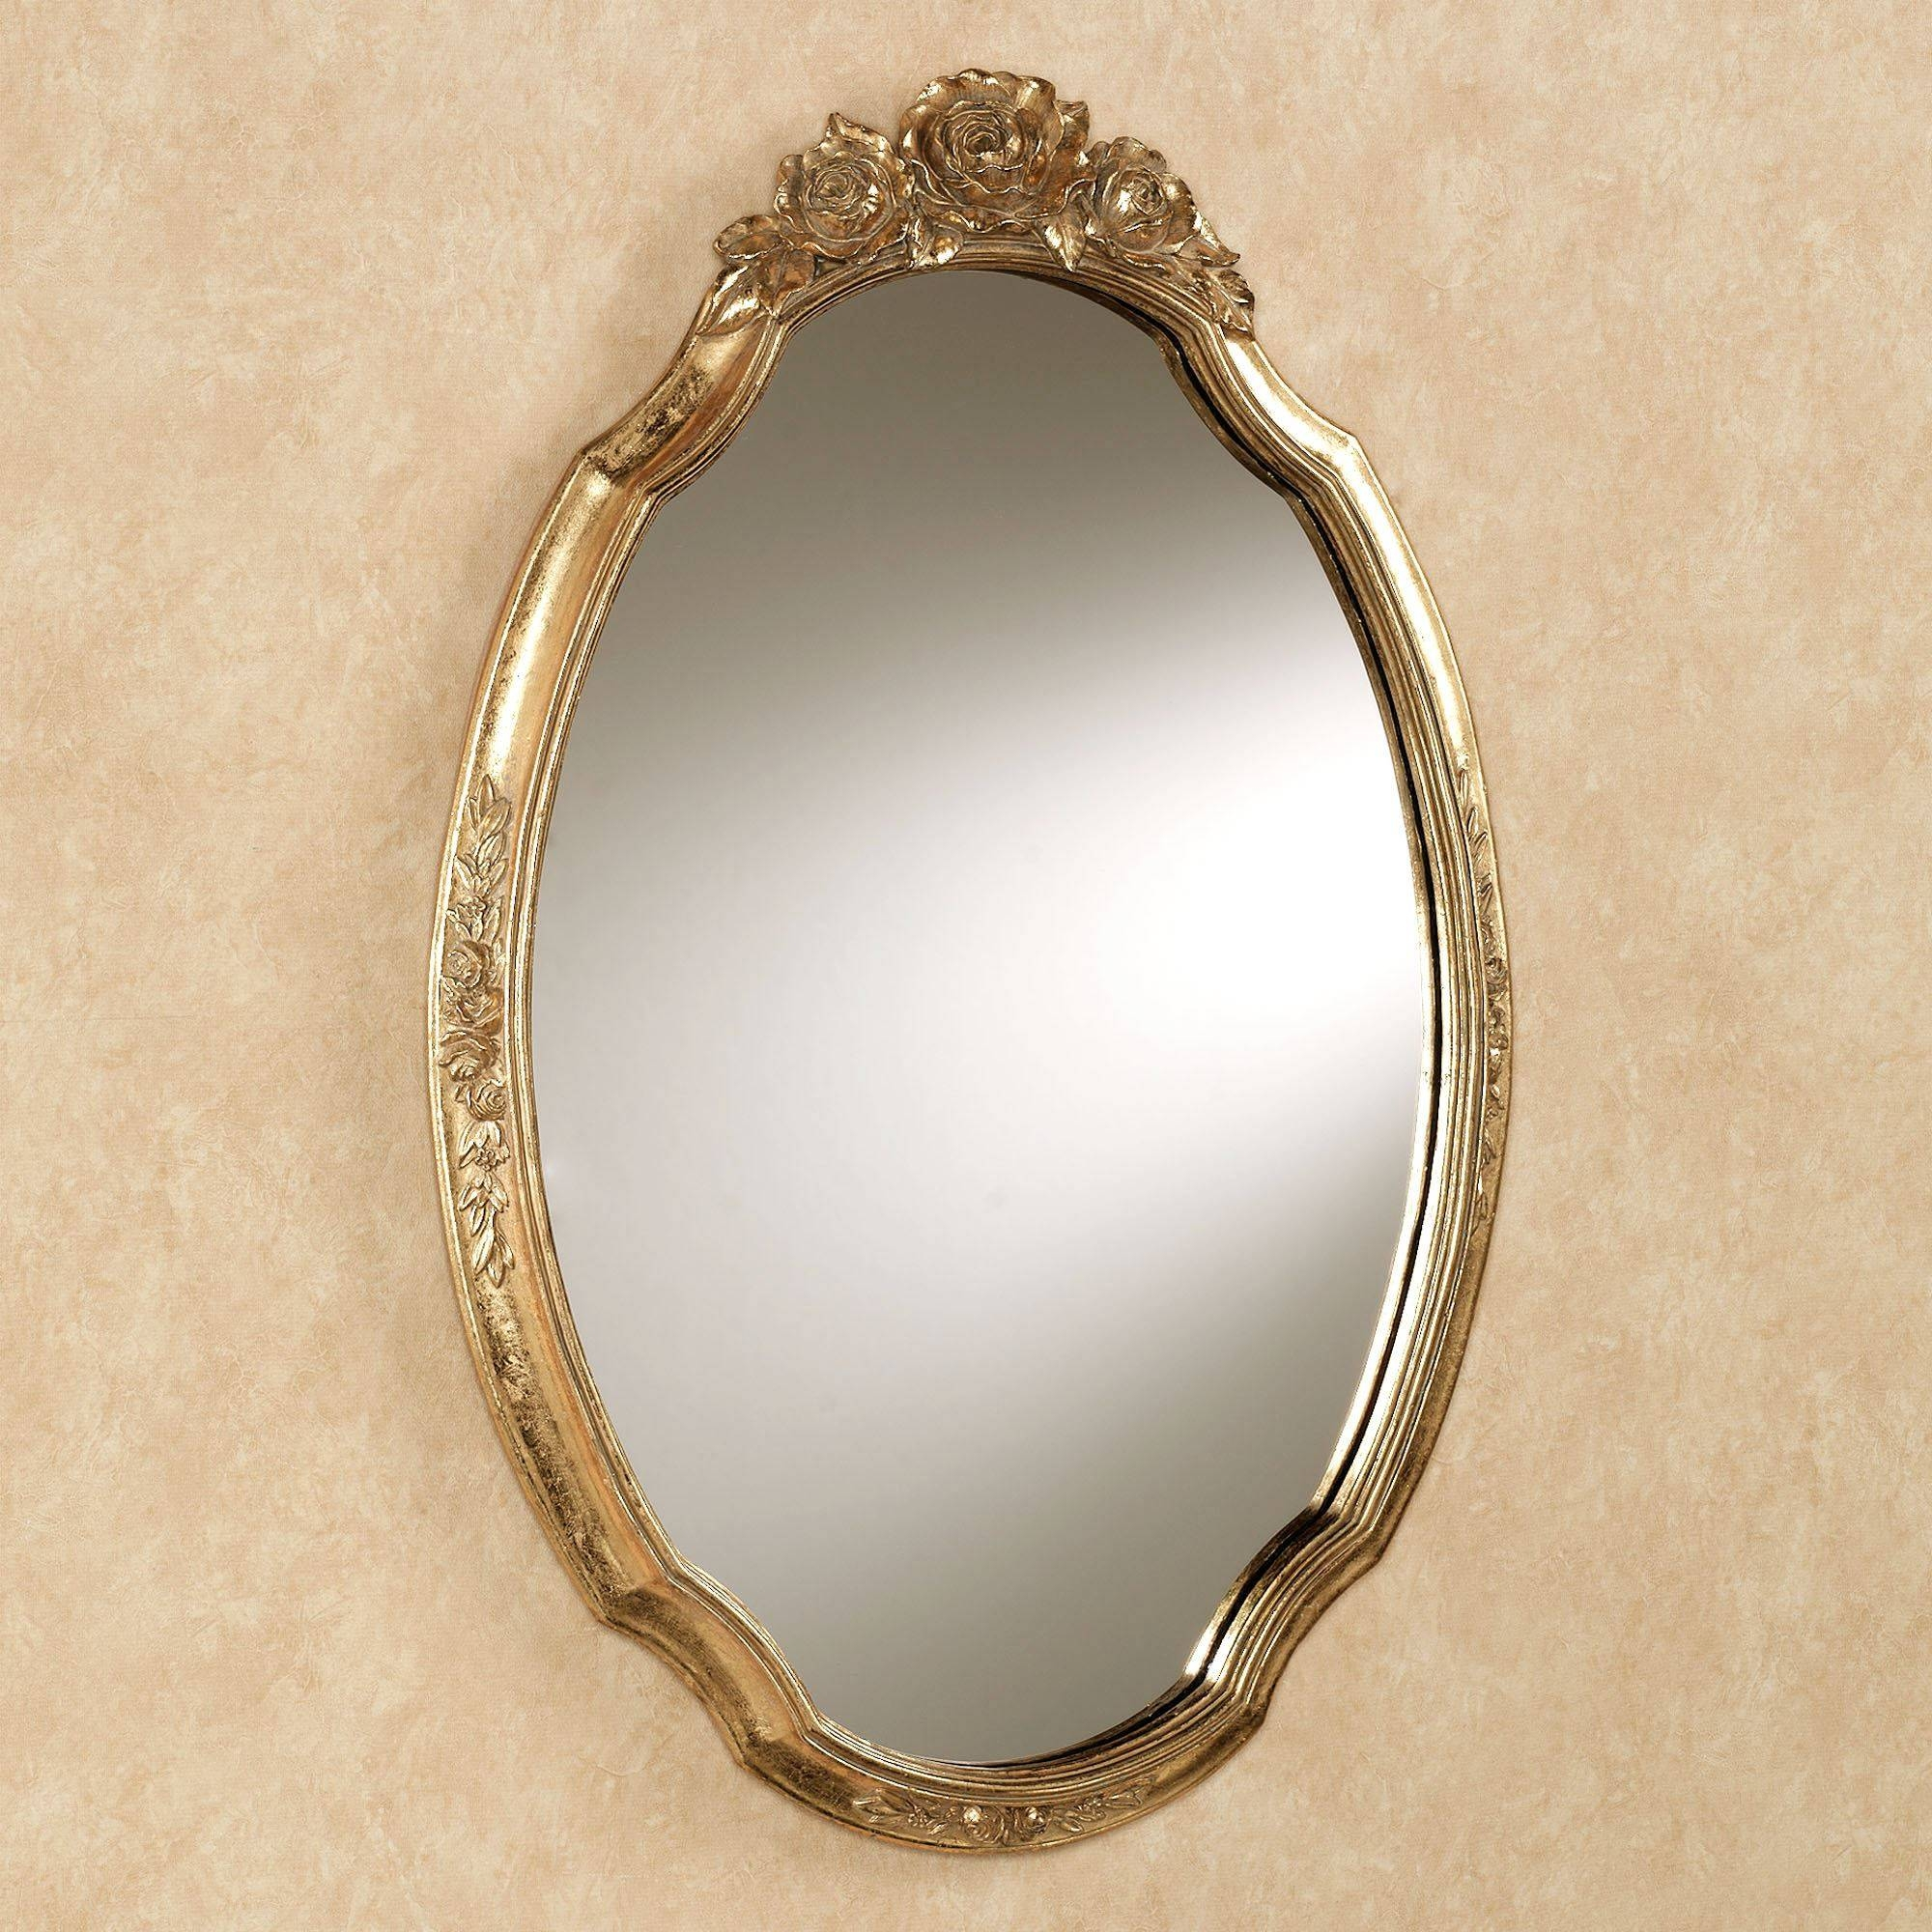 Jorah Rose Oval Wall Mirror with regard to Oval Mirrors For Walls (Image 9 of 25)